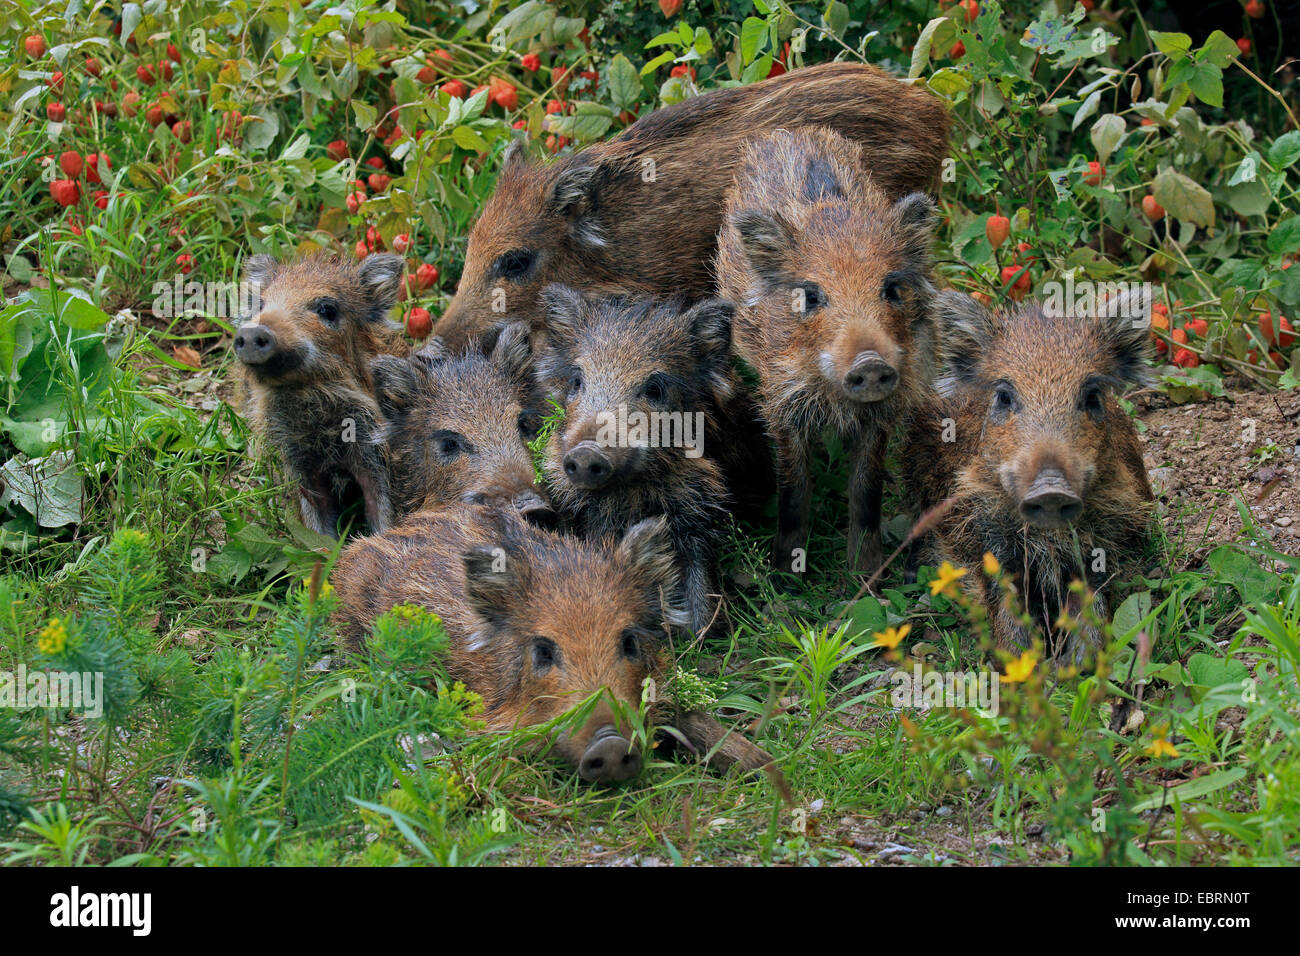 wild boar, pig, wild boar (Sus scrofa), wild sow with shotes in the garden, Germany, Baden-Wuerttemberg - Stock Image